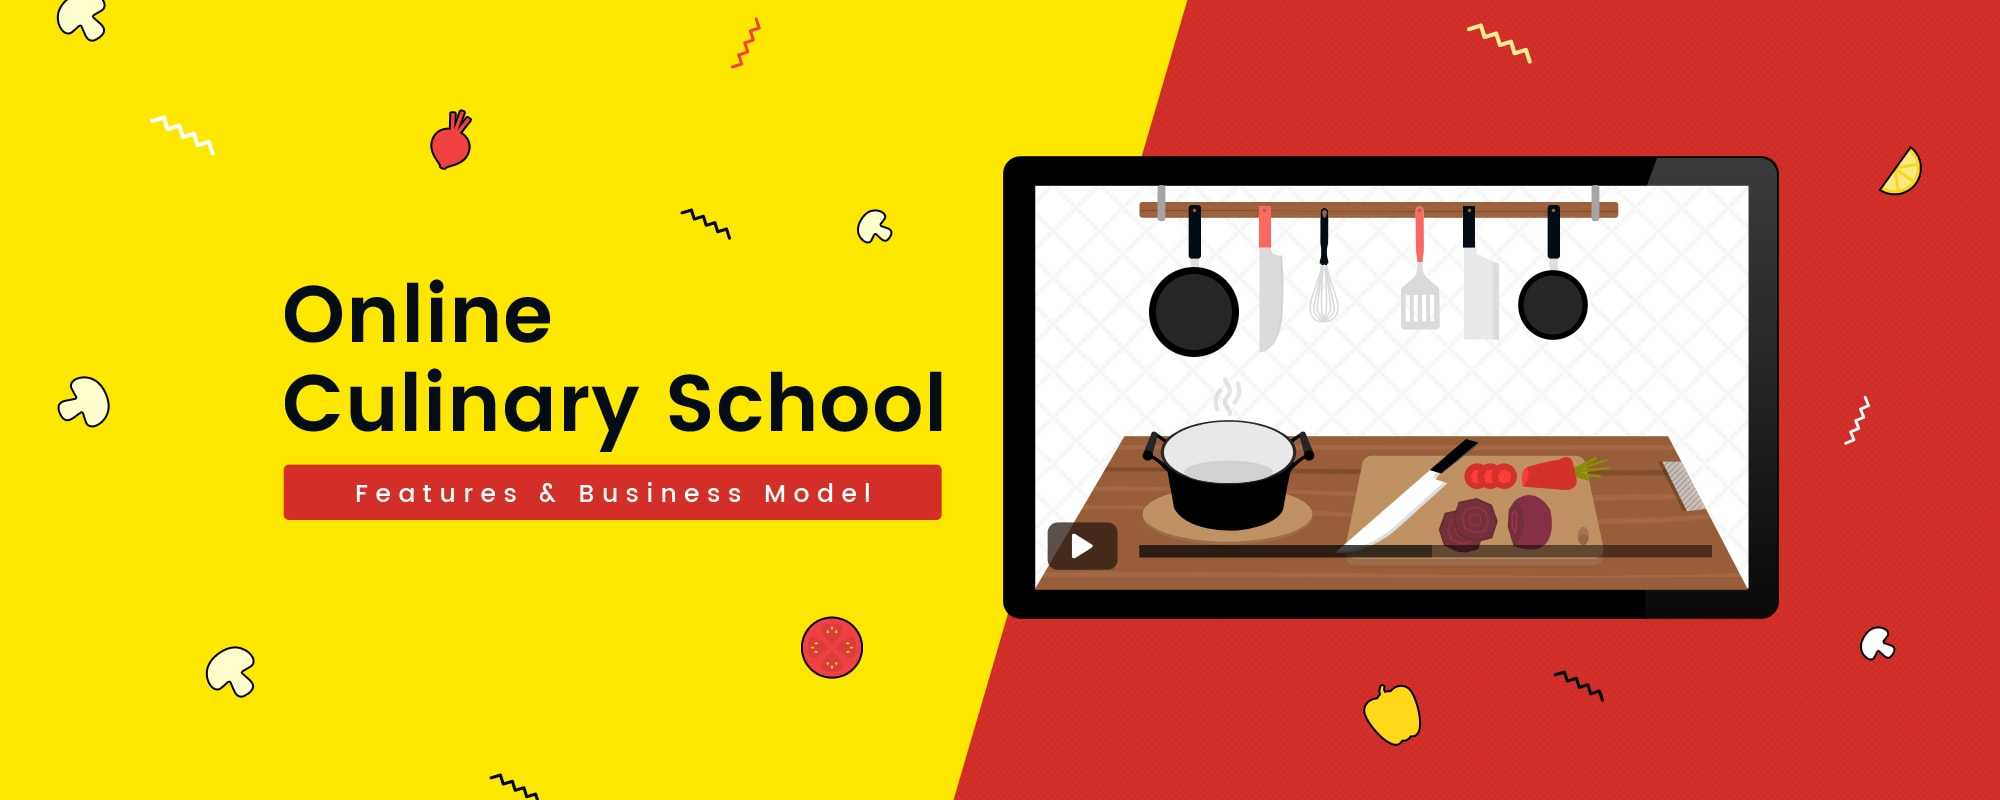 Launch The Best Online Culinary School Website- Business Model & UI Details